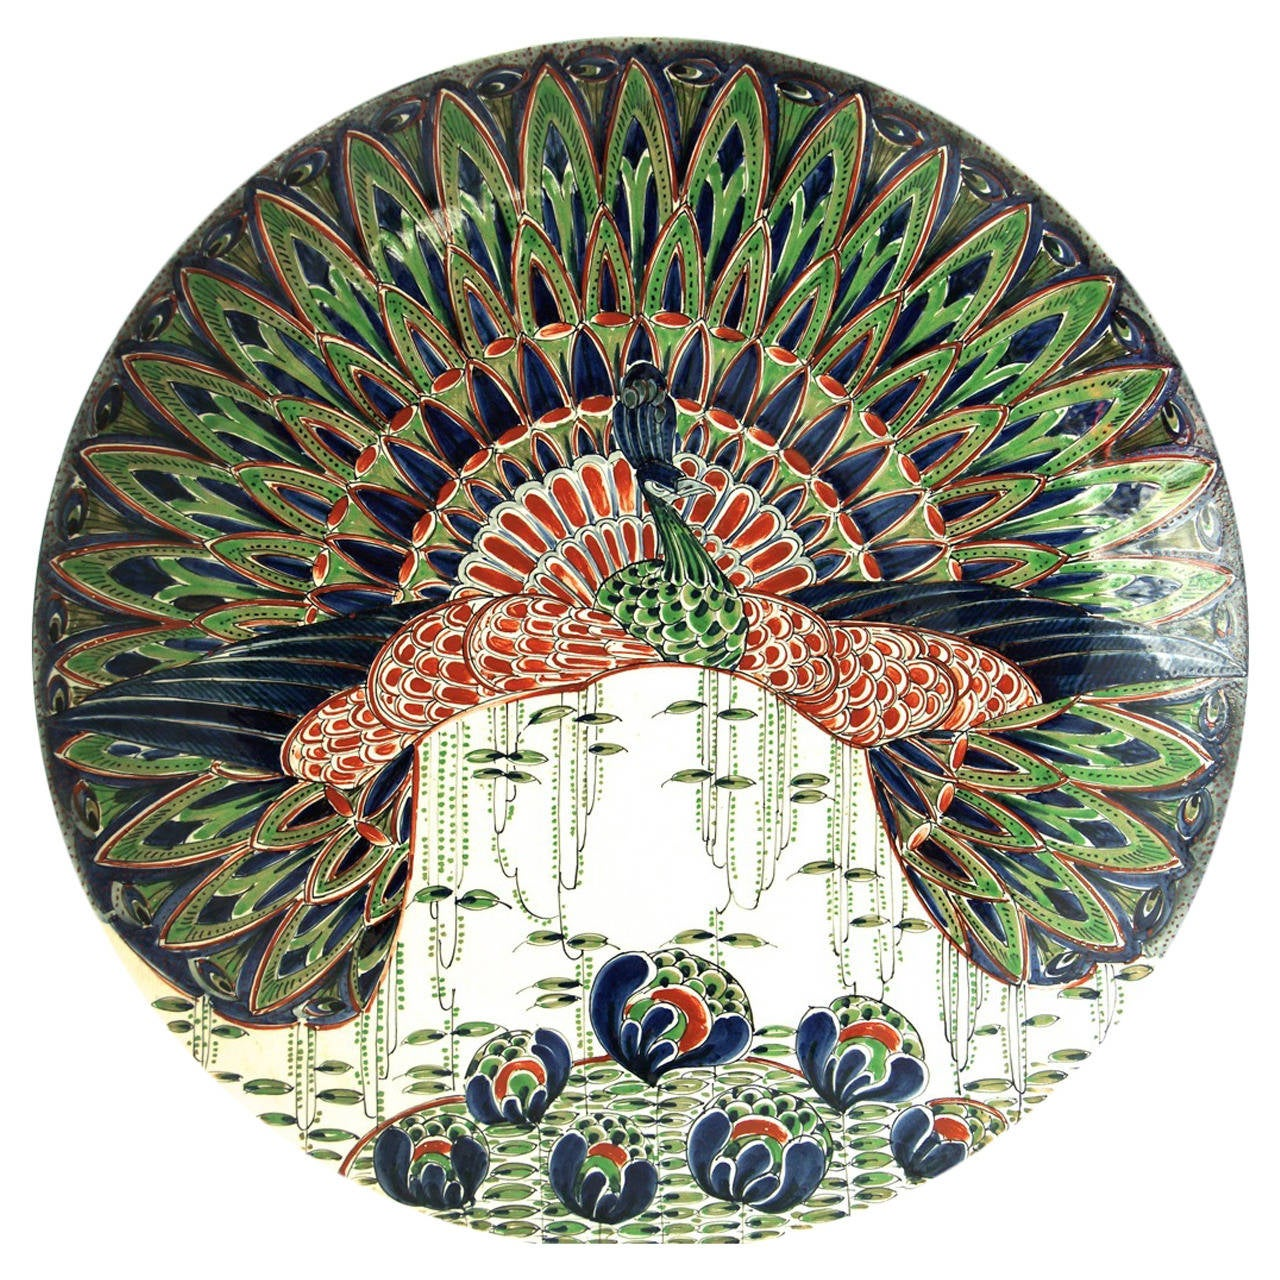 sc 1 st  1stDibs & Art Nouveau Ceramic Wall Plate For Sale at 1stdibs